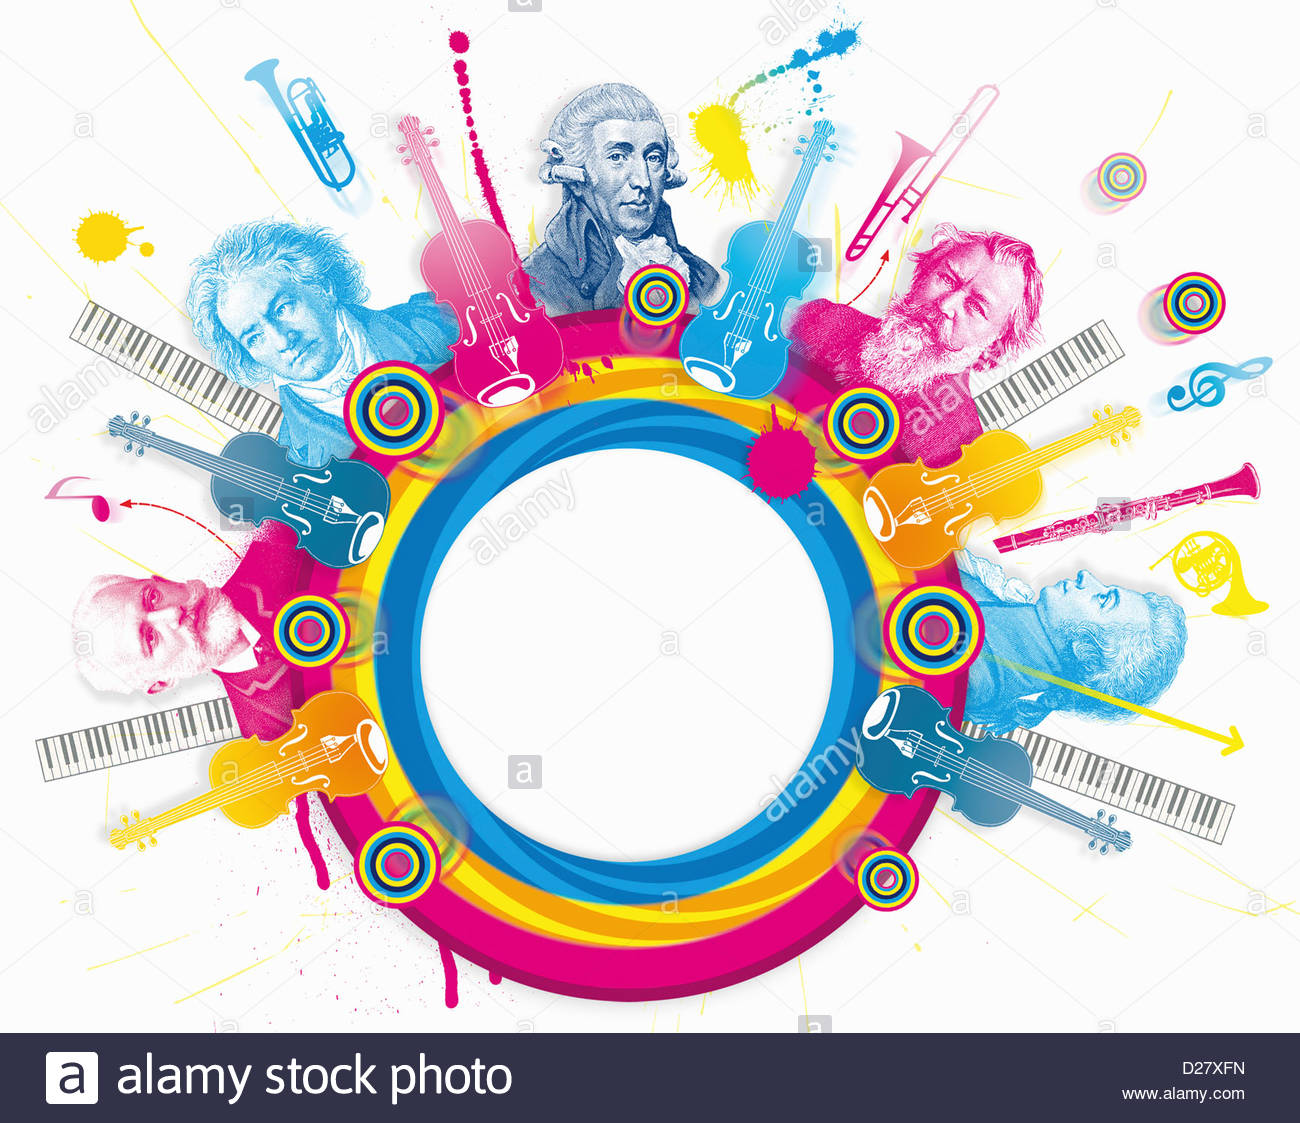 Multicolored collage of classical music composers - Stock Image